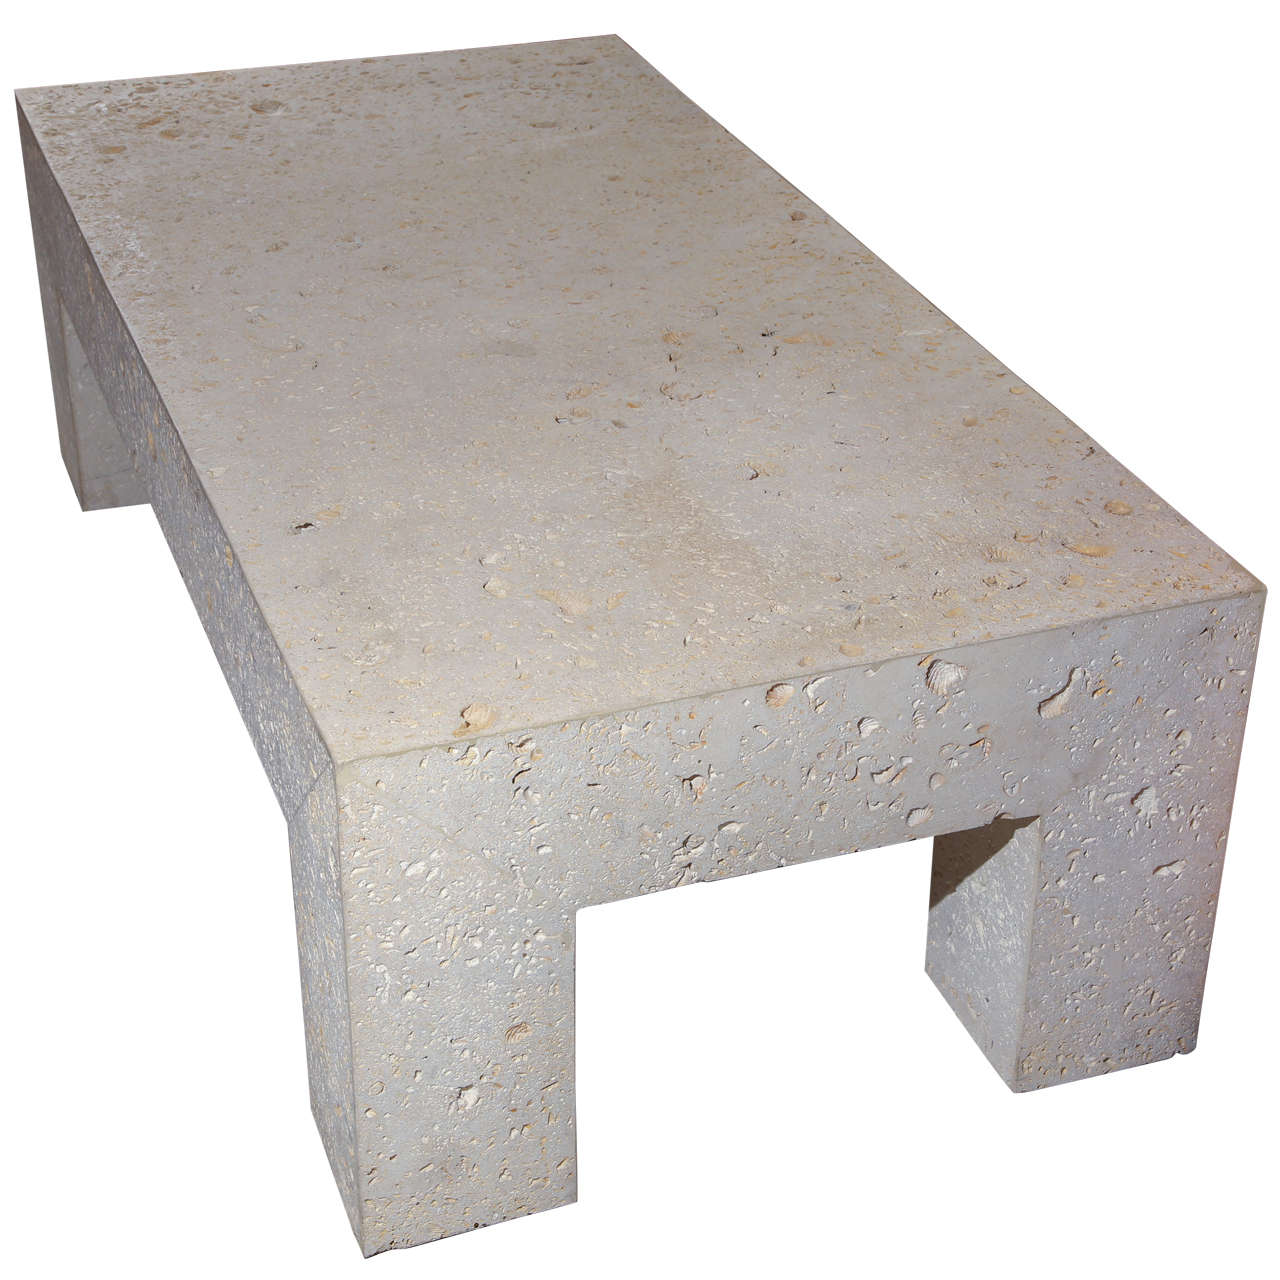 Fossil Stone Coffee Table 1 - Fossil Stone Coffee Table At 1stdibs